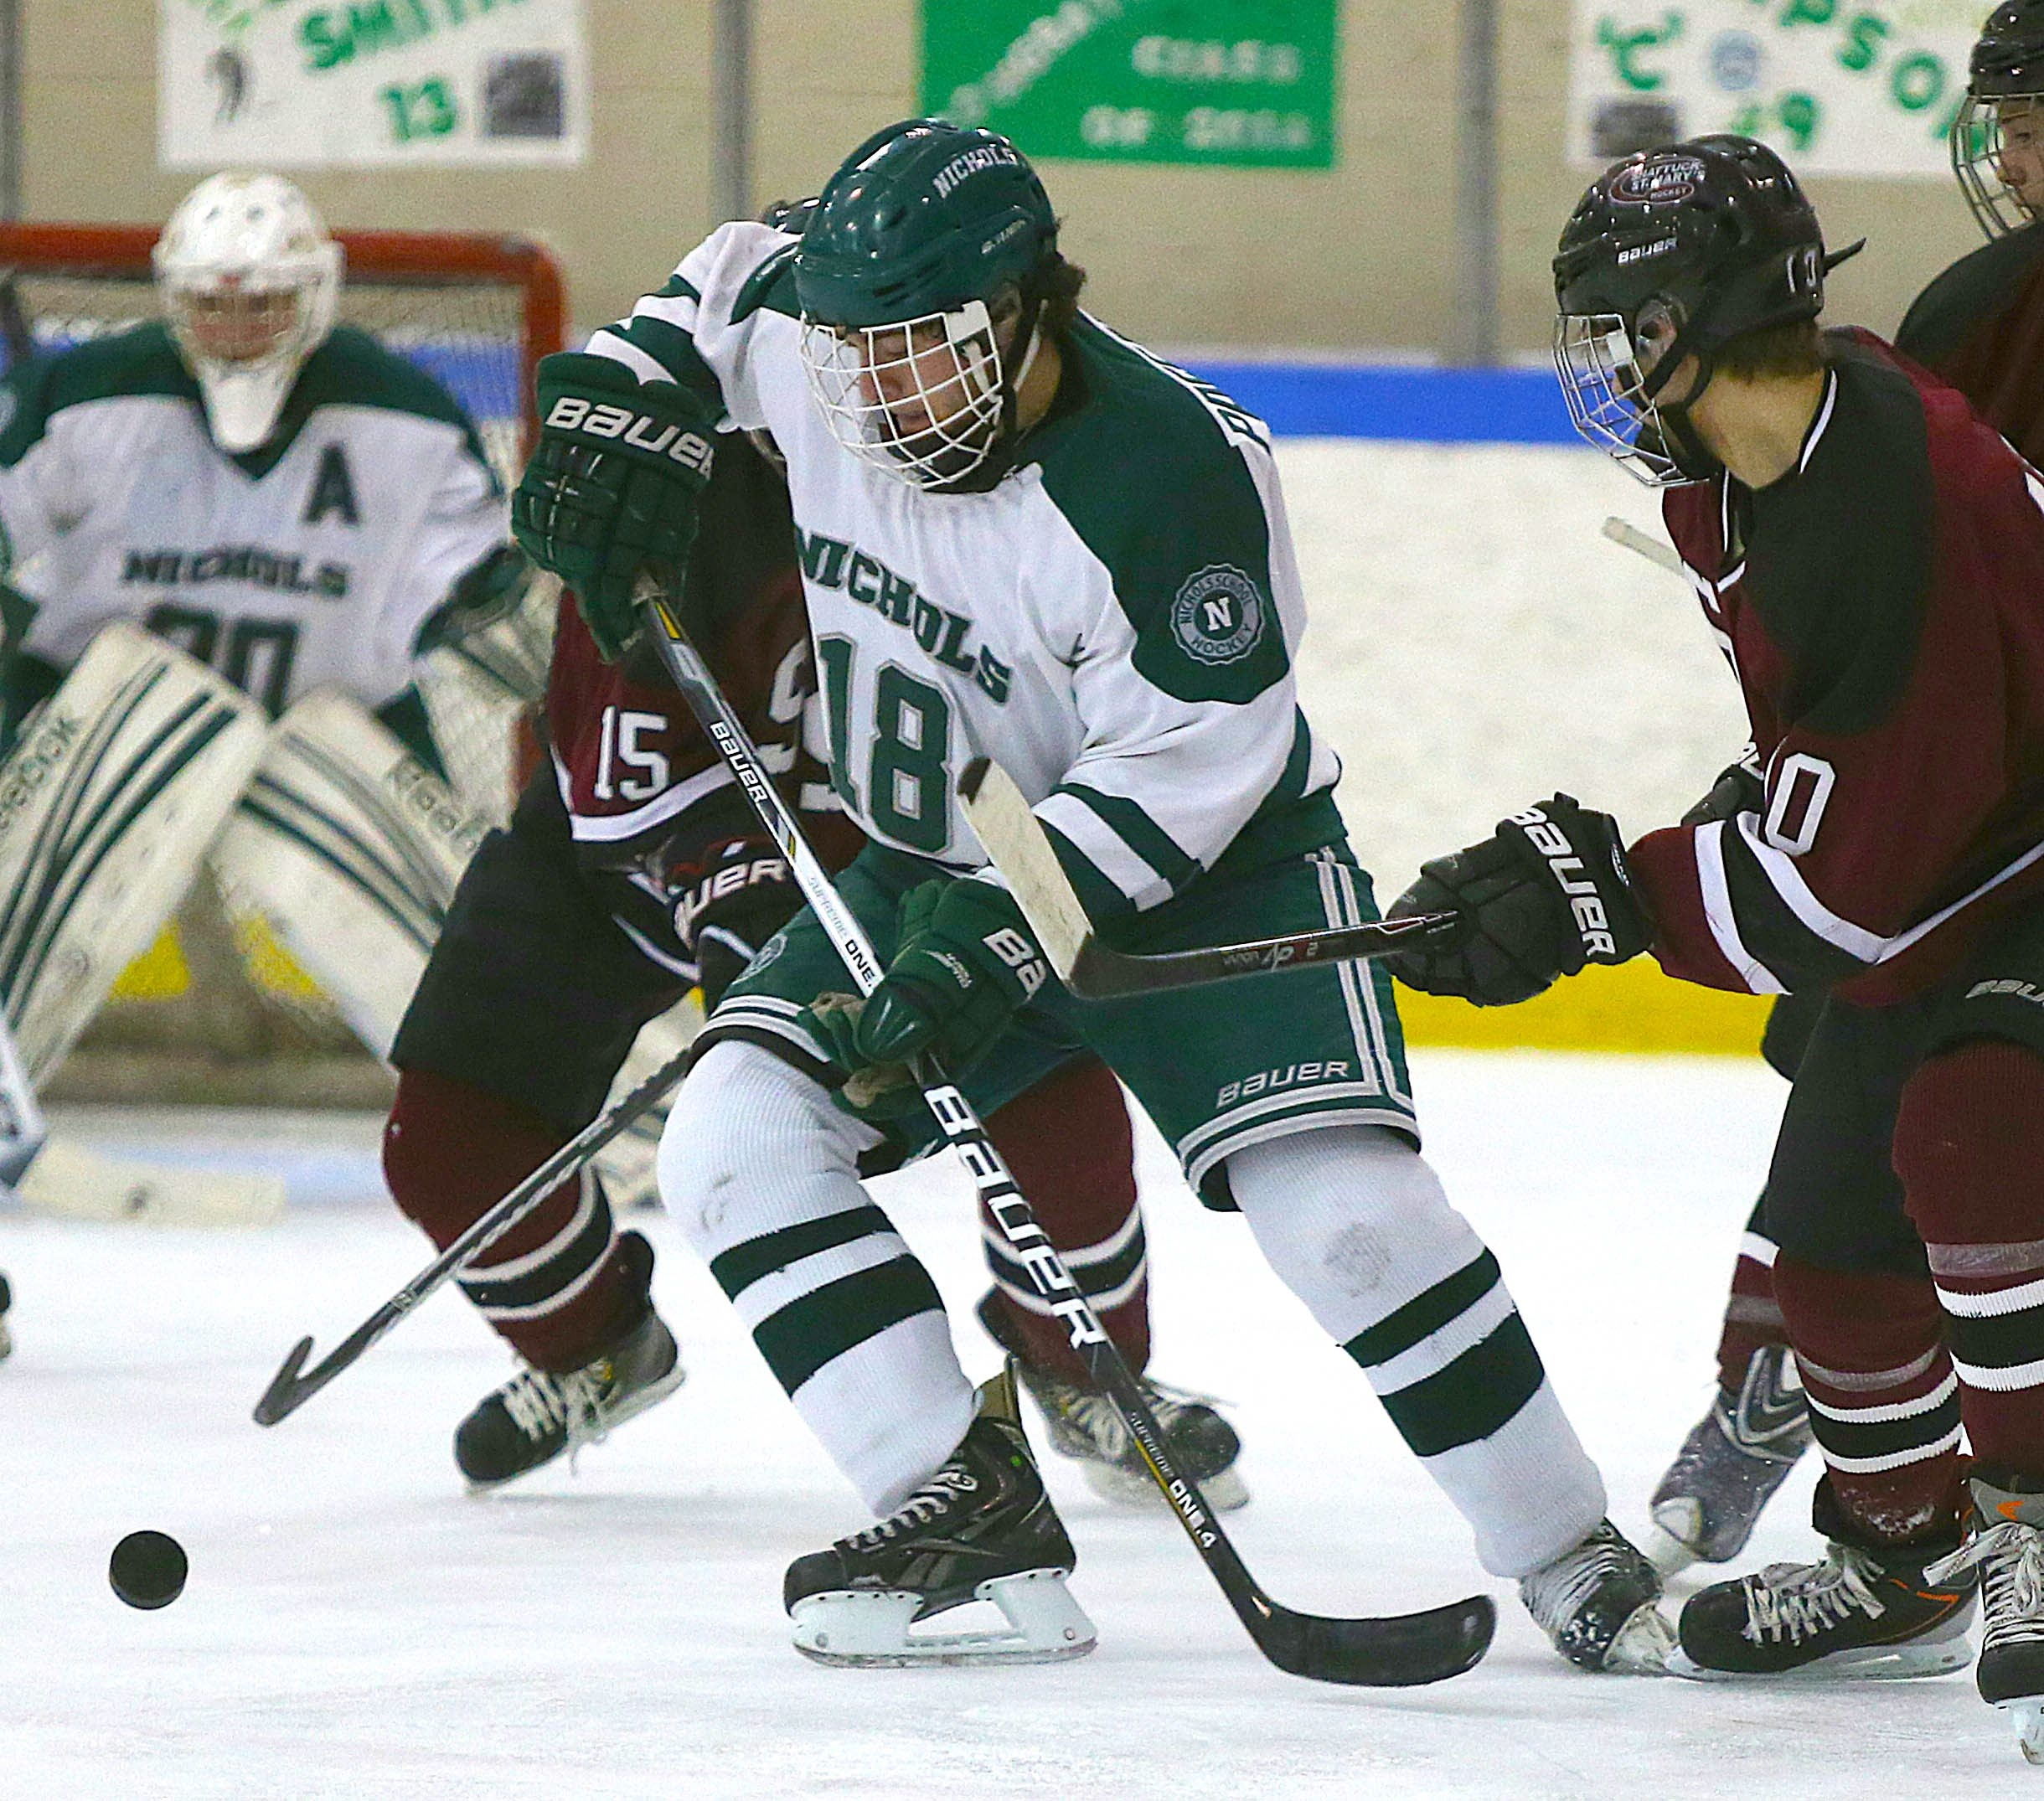 Nichols' Nick Passafiume (18) controls the puck against Shattuck-St. Mary's. Nichols dropped a 3-2 decision at home.